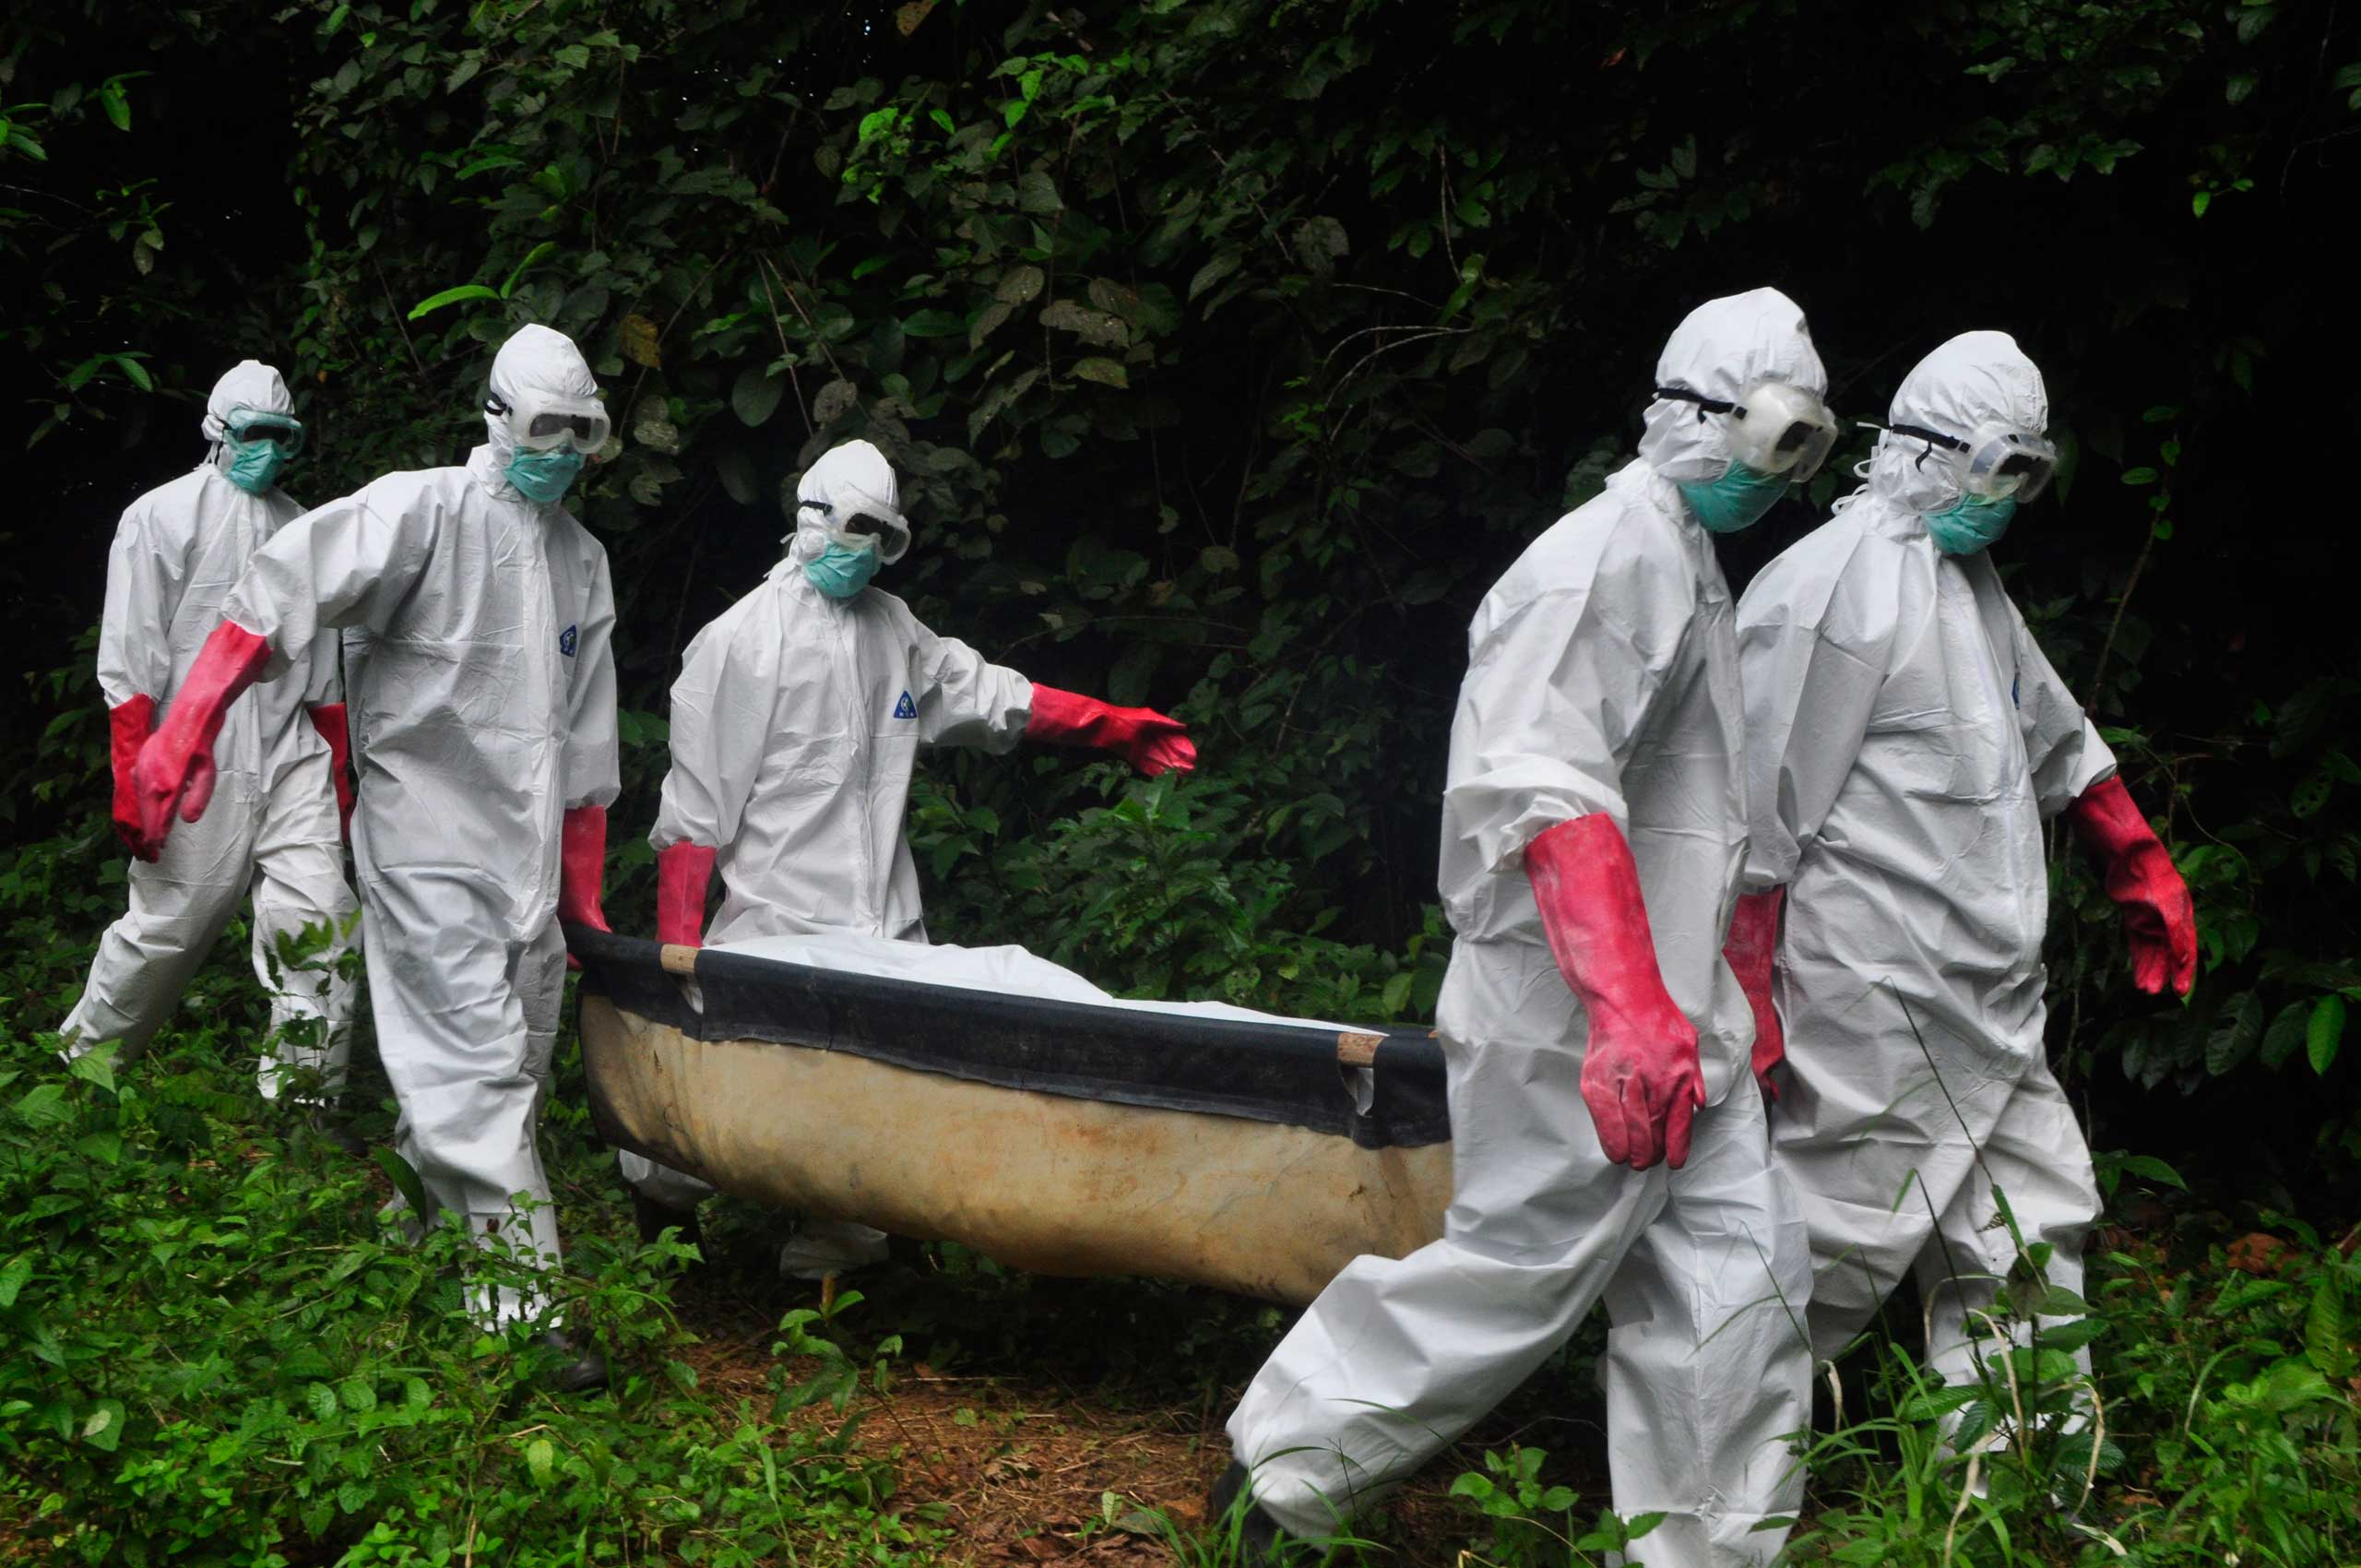 A burial team in protective gear carry the body of woman suspected to have died from the Ebola virus in Monrovia, Liberia, Oct. 18, 2014.